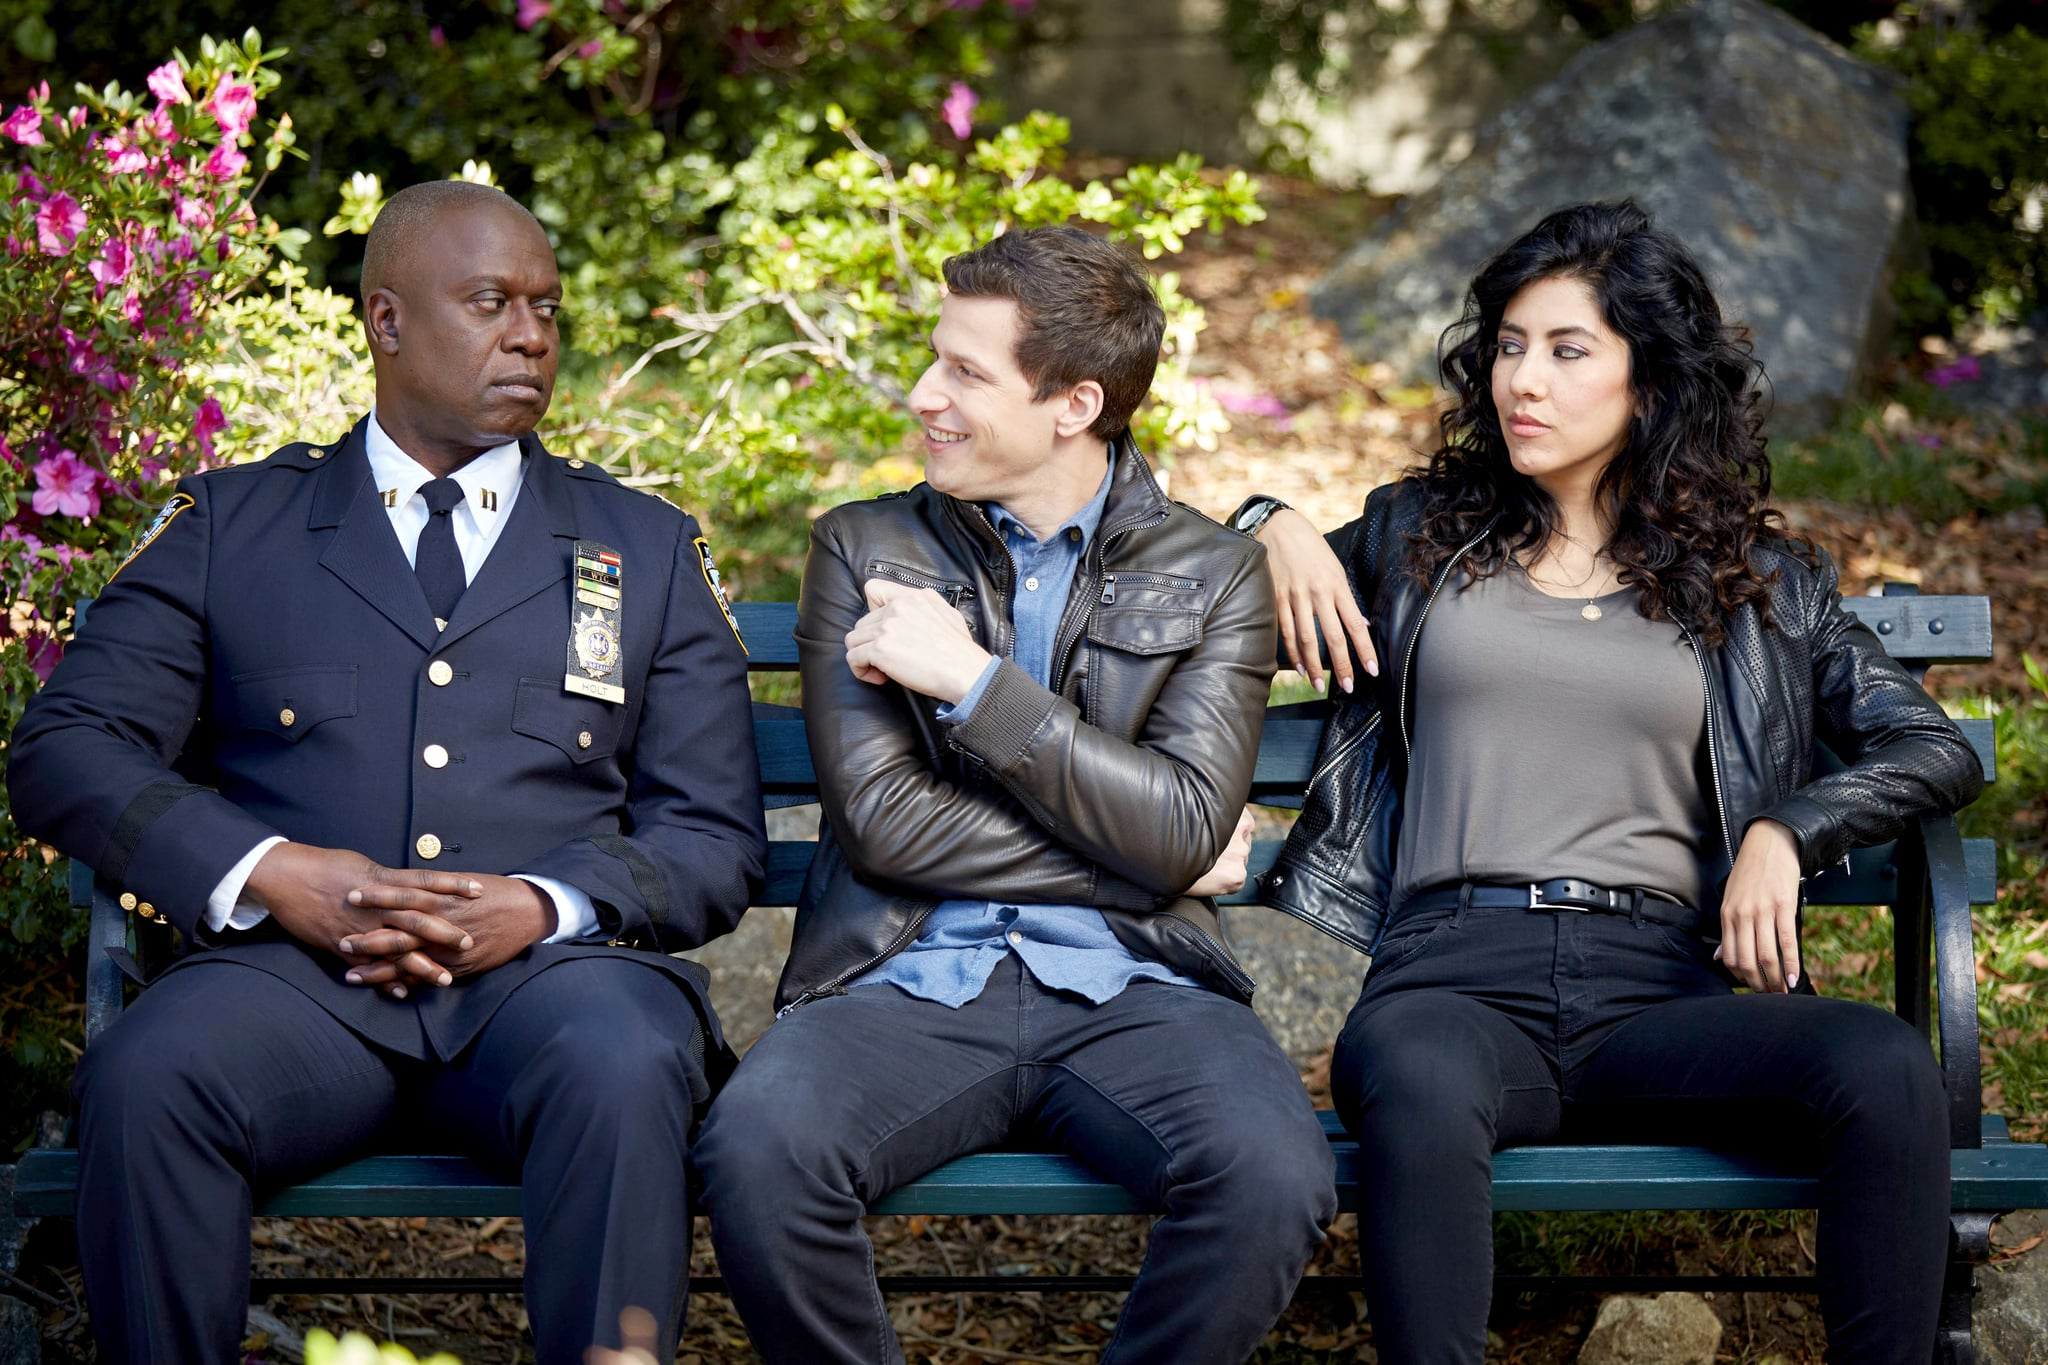 BROOKLYN NINE-NINE, l-r:  Andre Braugher, Andy Samberg, Stephanie Beatriz in 'The Bureau' (Season 3, Episode 22, aired April 12, 2016). ph: John P. Fleenor/Fox/courtesy Everett Collection